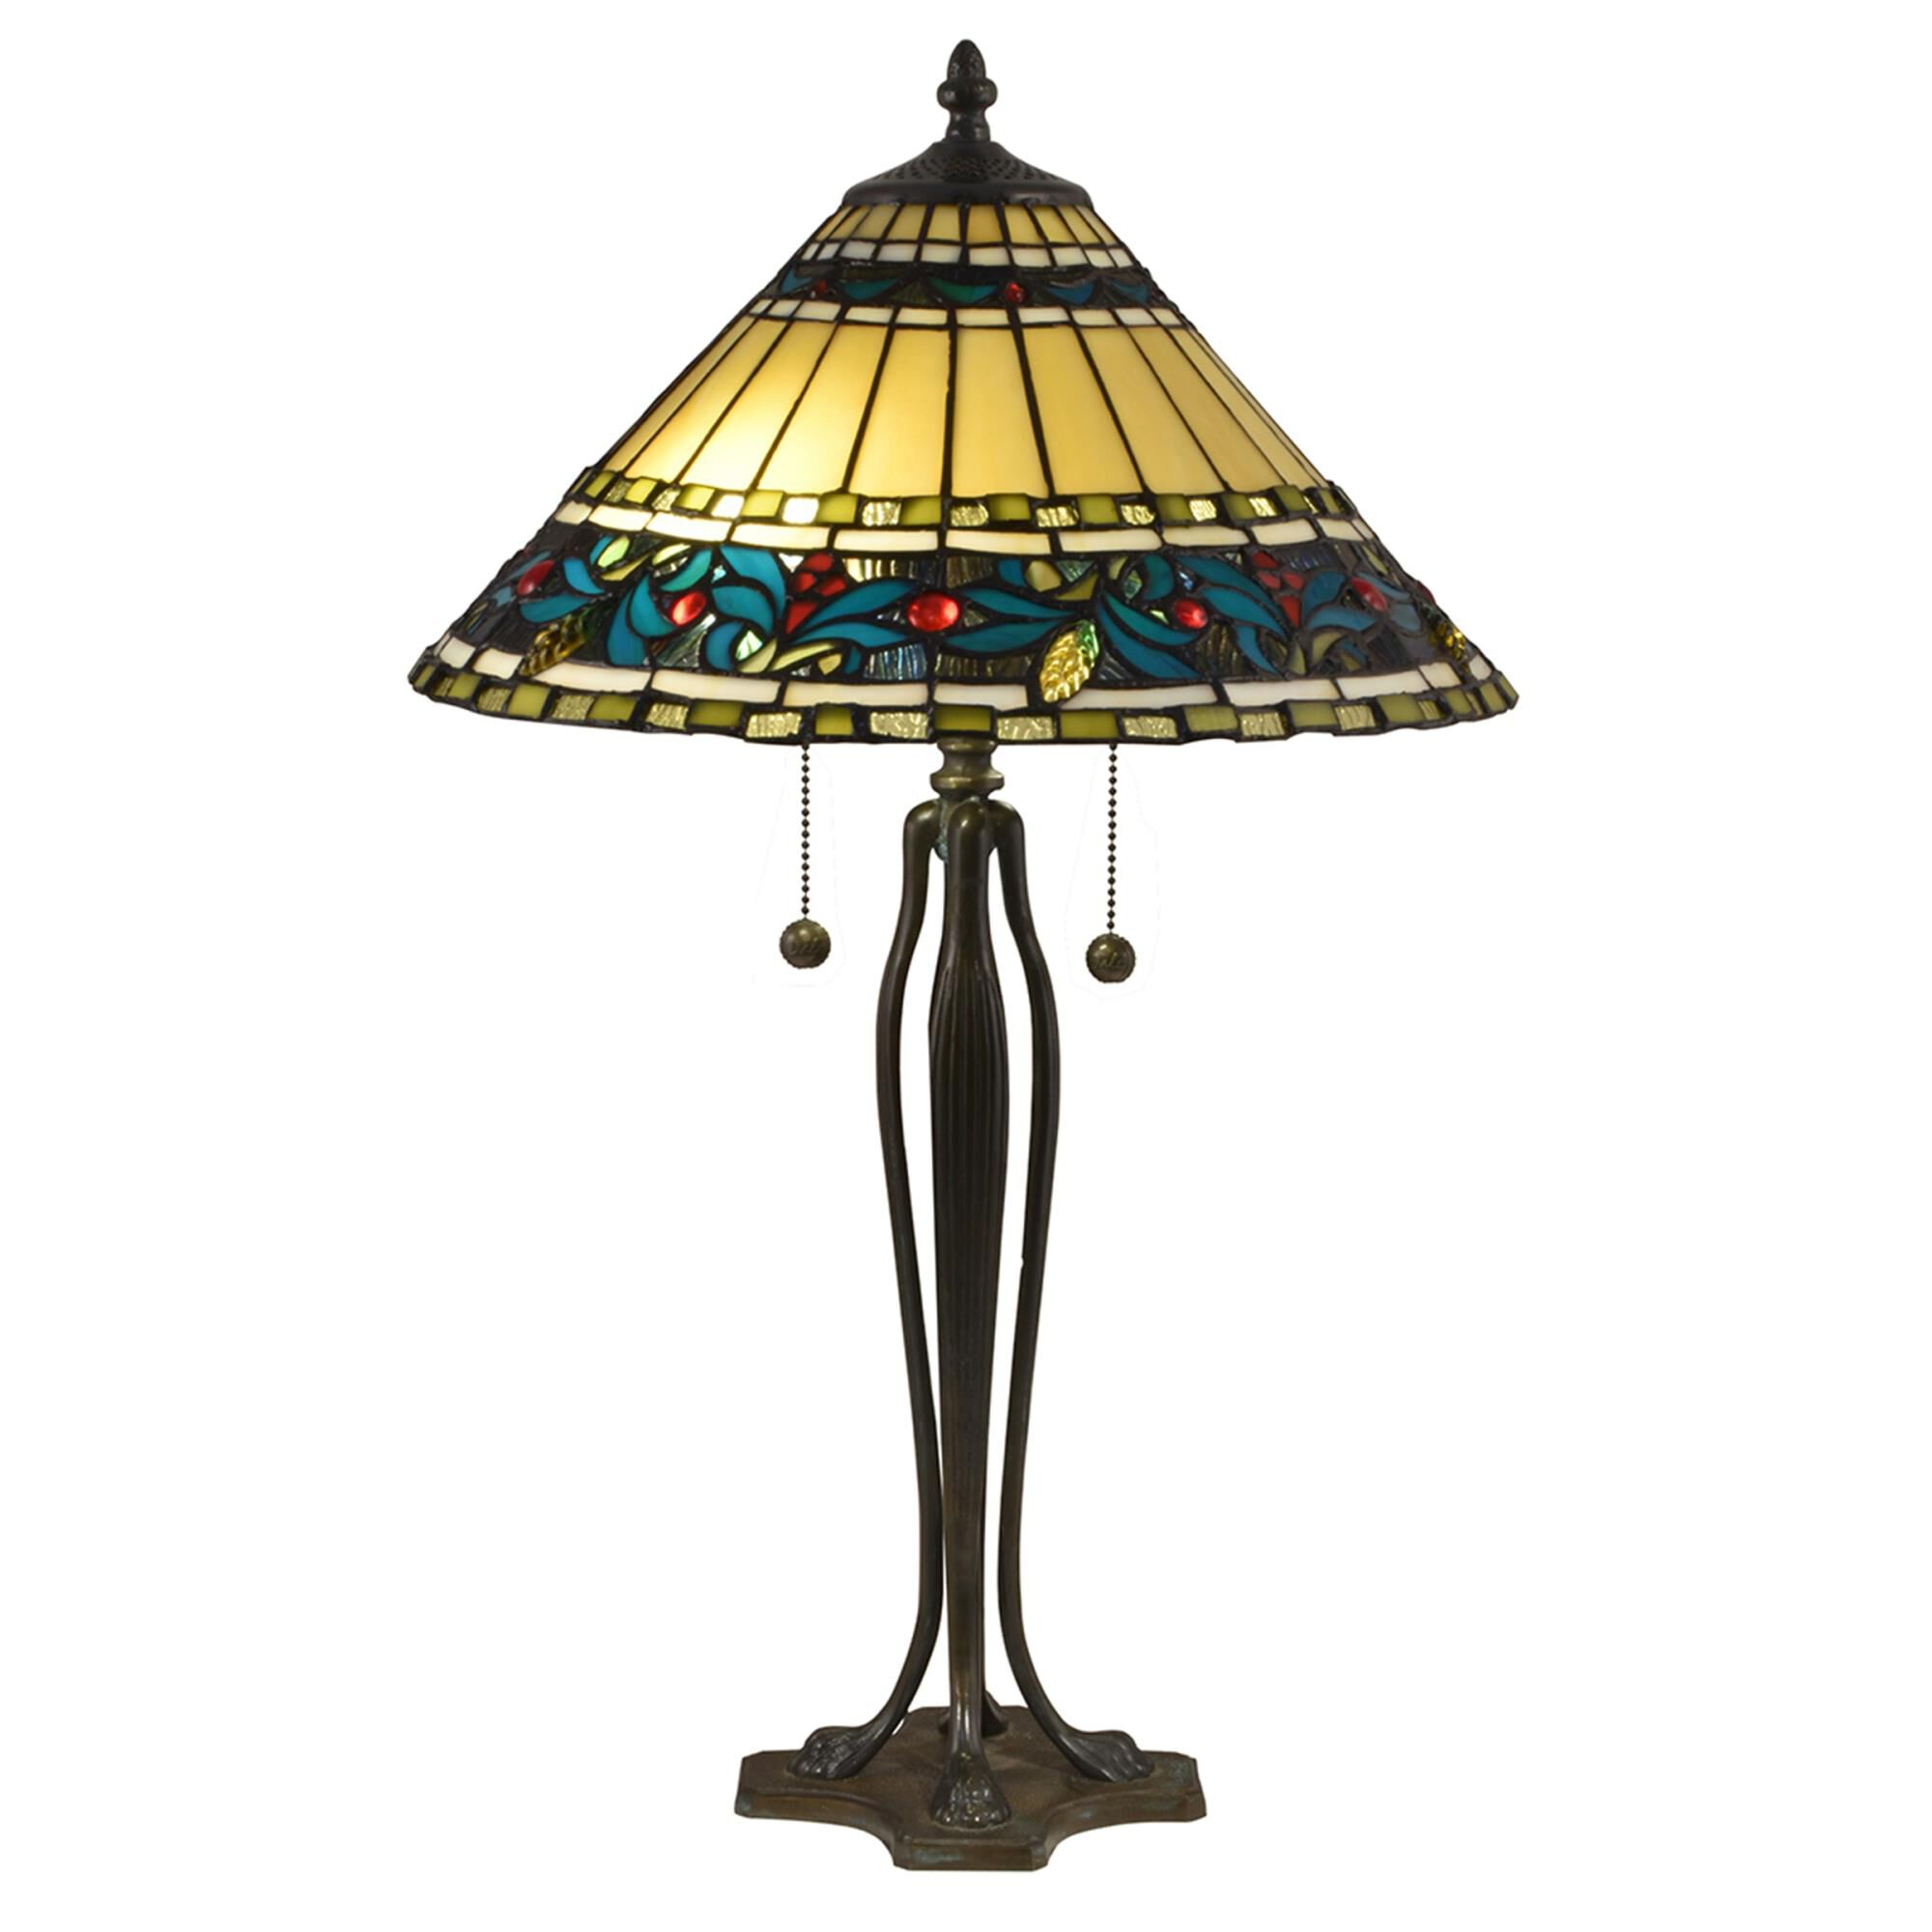 Dale Tiffany 25 Inch Table Lamp - TT18190 Table Lamp Designer Lights Room & Exterior